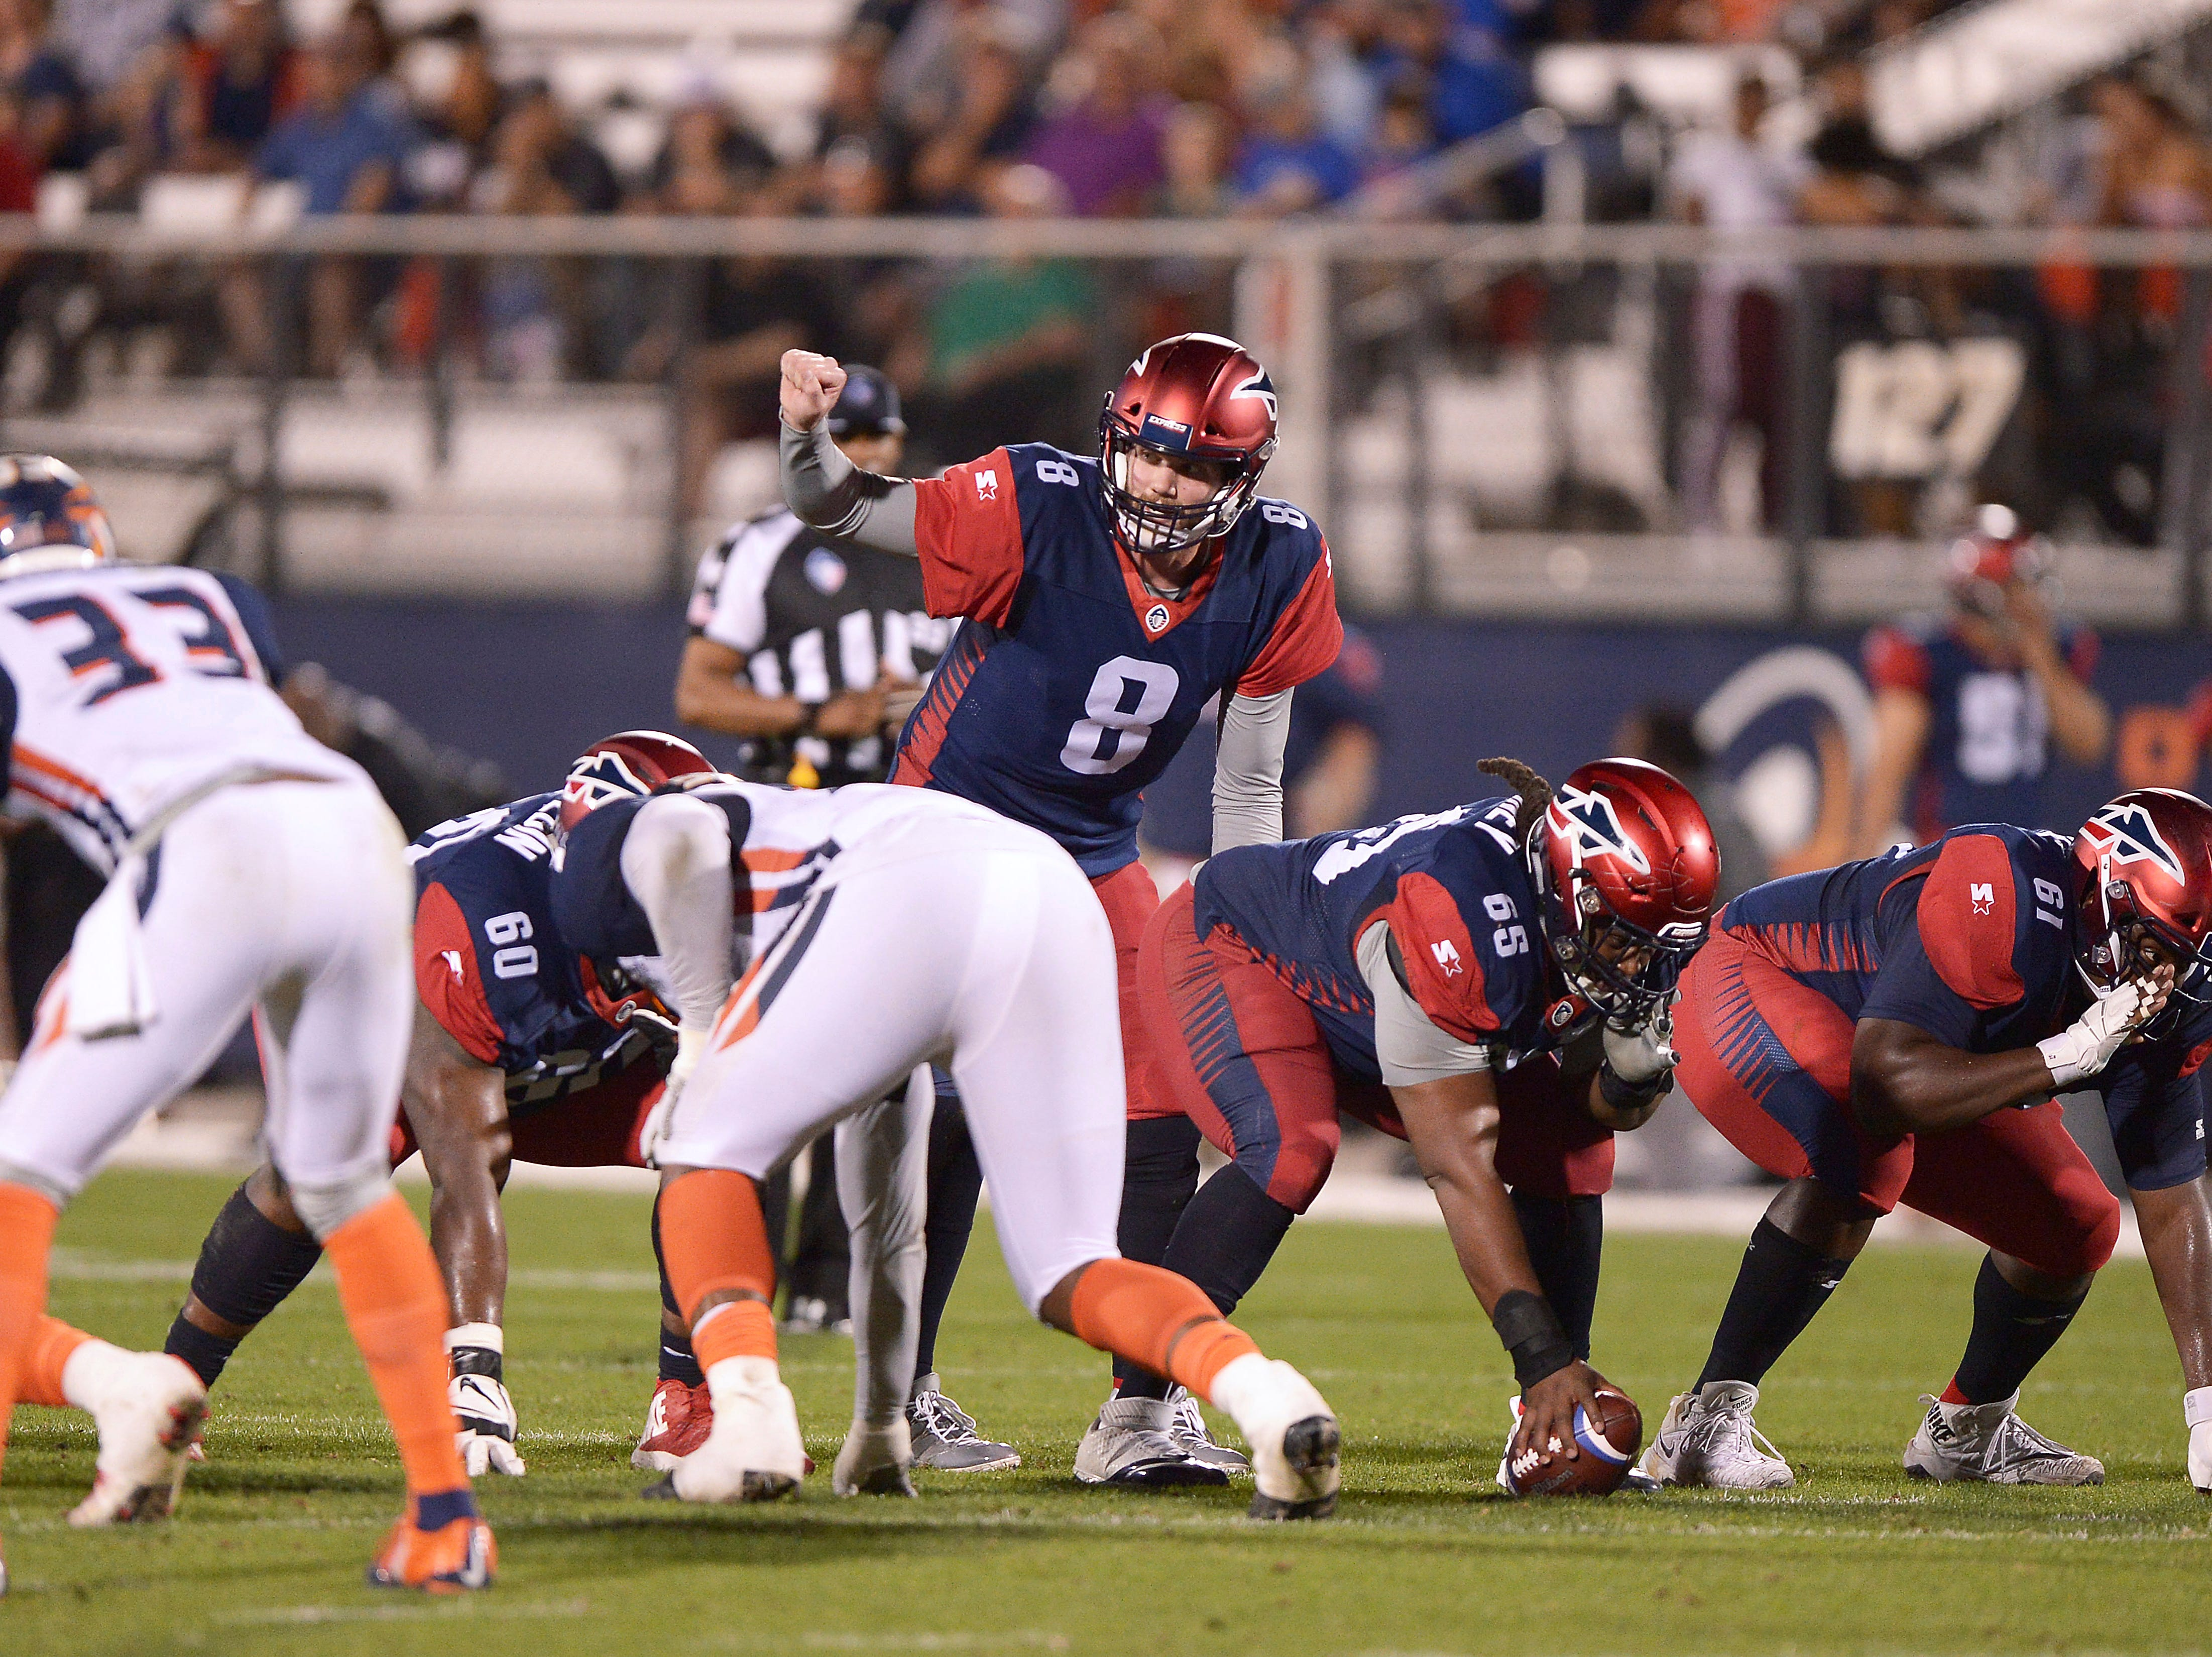 Memphis Express quarterback Zach Mettenberger (8) signals a receiver from under center against the Orlando Apollos during an AAF football game, Saturday, Feb. 23, 2019, at Spectrum Stadium in Orlando, Fla. (AP Photo/Rick Wilson) ORG XMIT: NYOTK